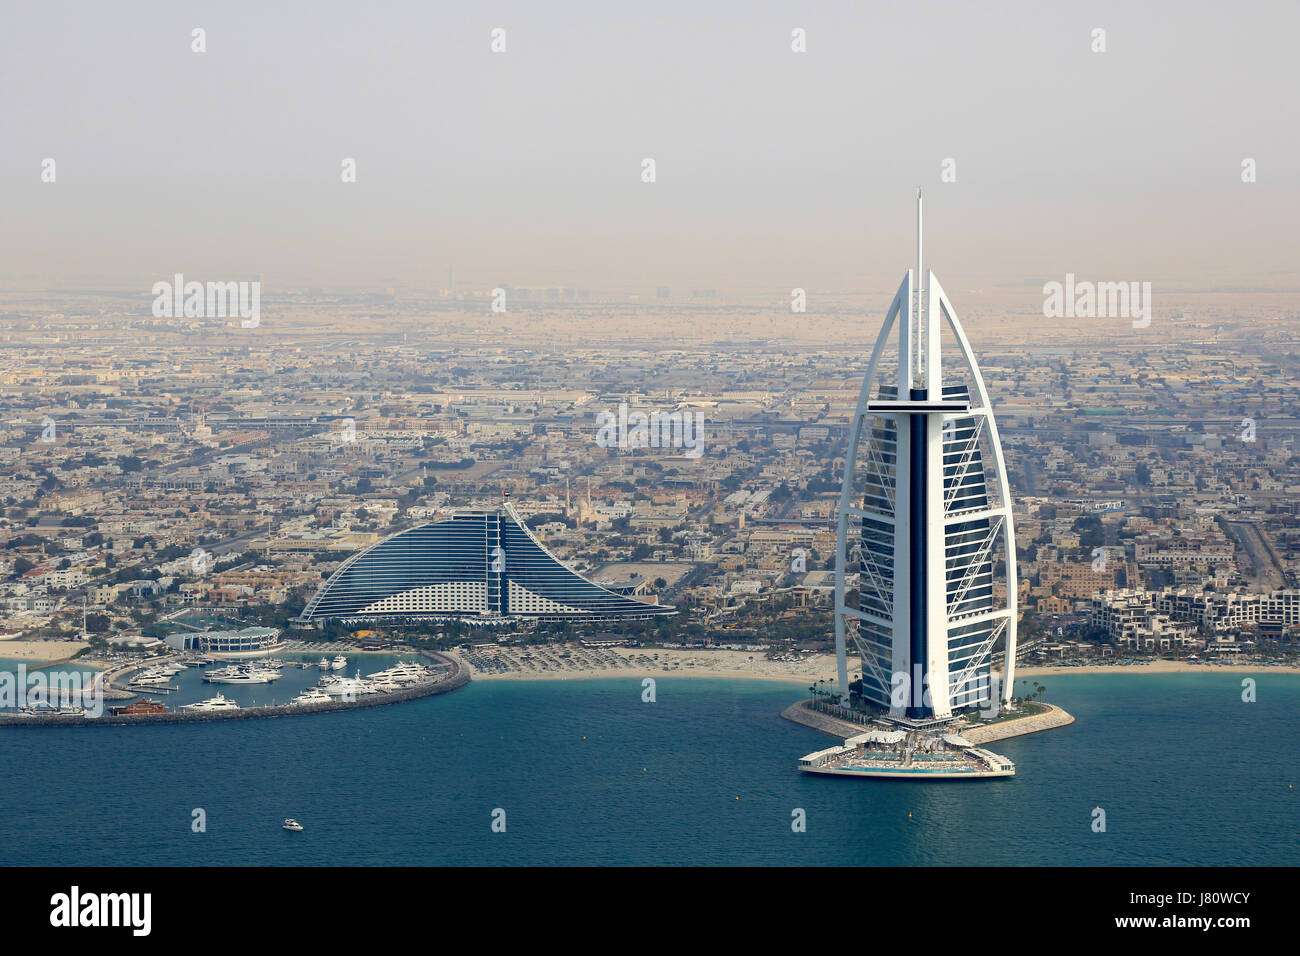 Dubai Burj Al Arab Jumeirah Beach Hotel aerial view photography UAE - Stock Image